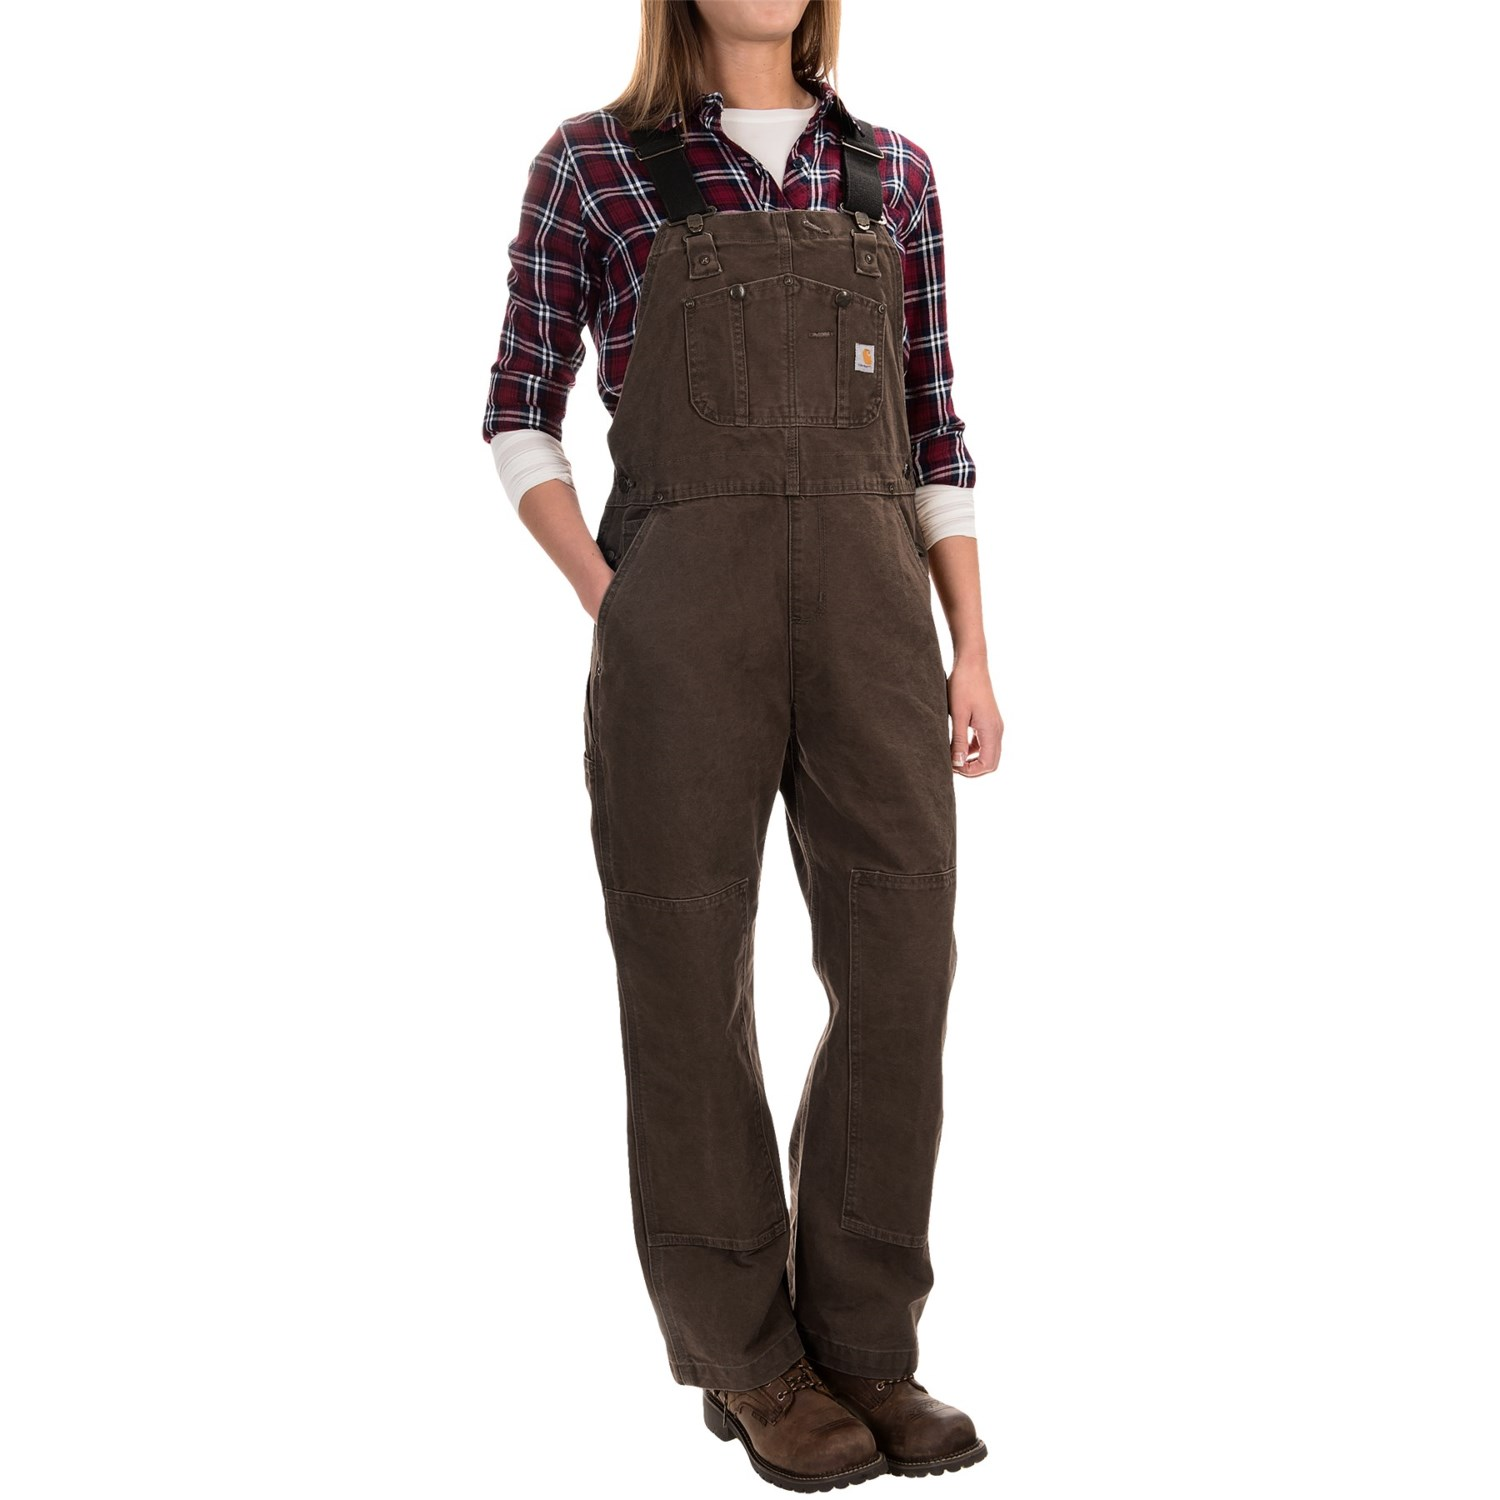 Fashion For Women Bib Overalls Pictures To Pin On Pinterest - PinsDaddy